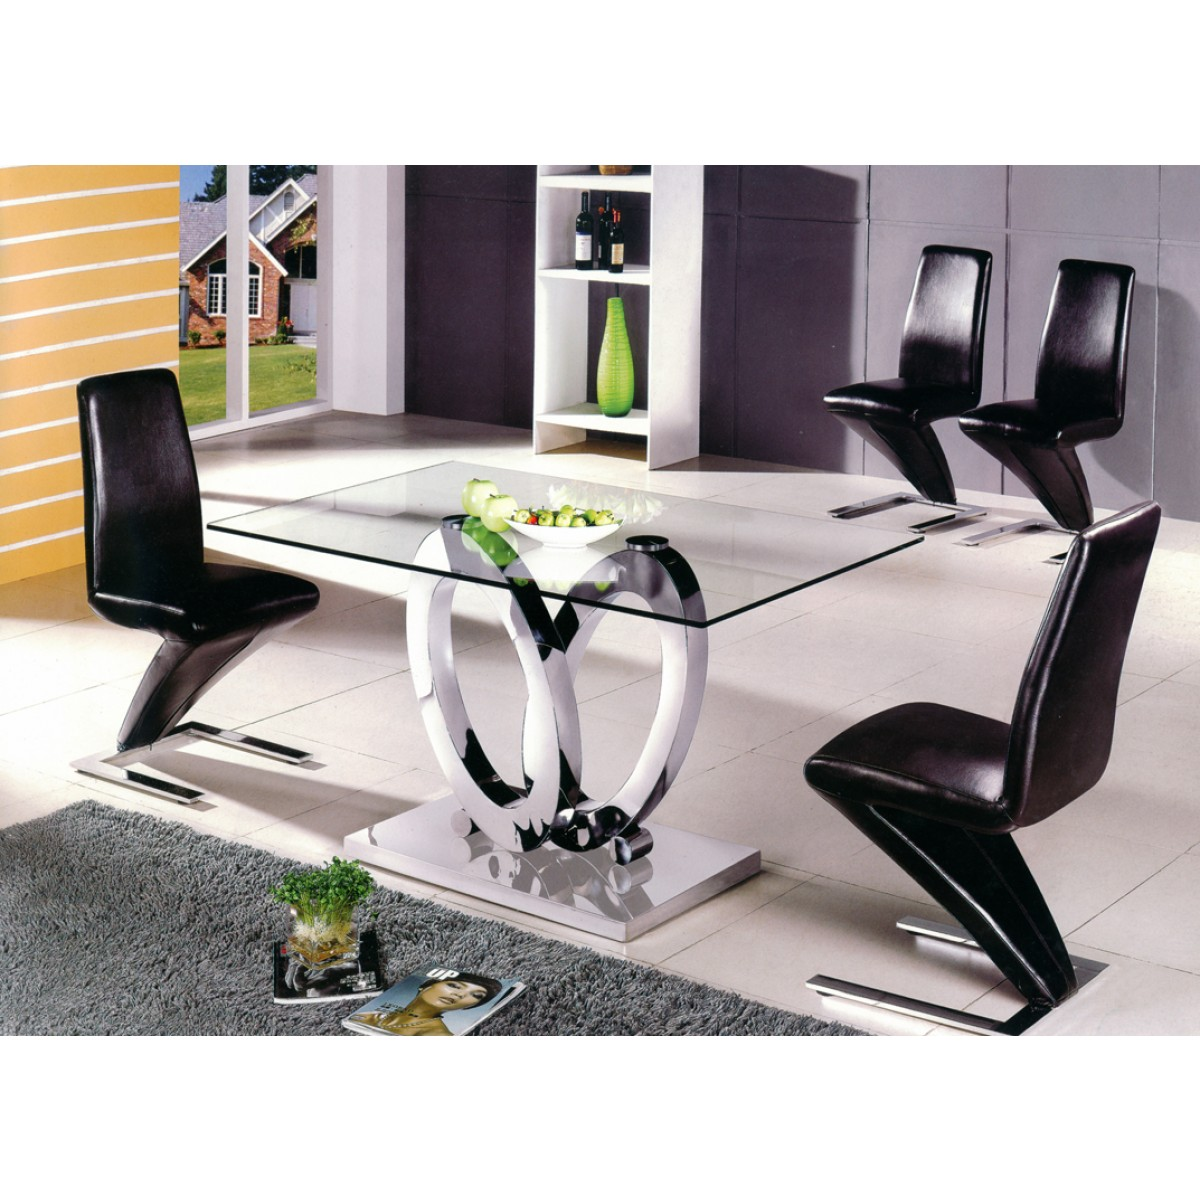 Table manger design ellipse taille au choix tables for Table salle manger noire design